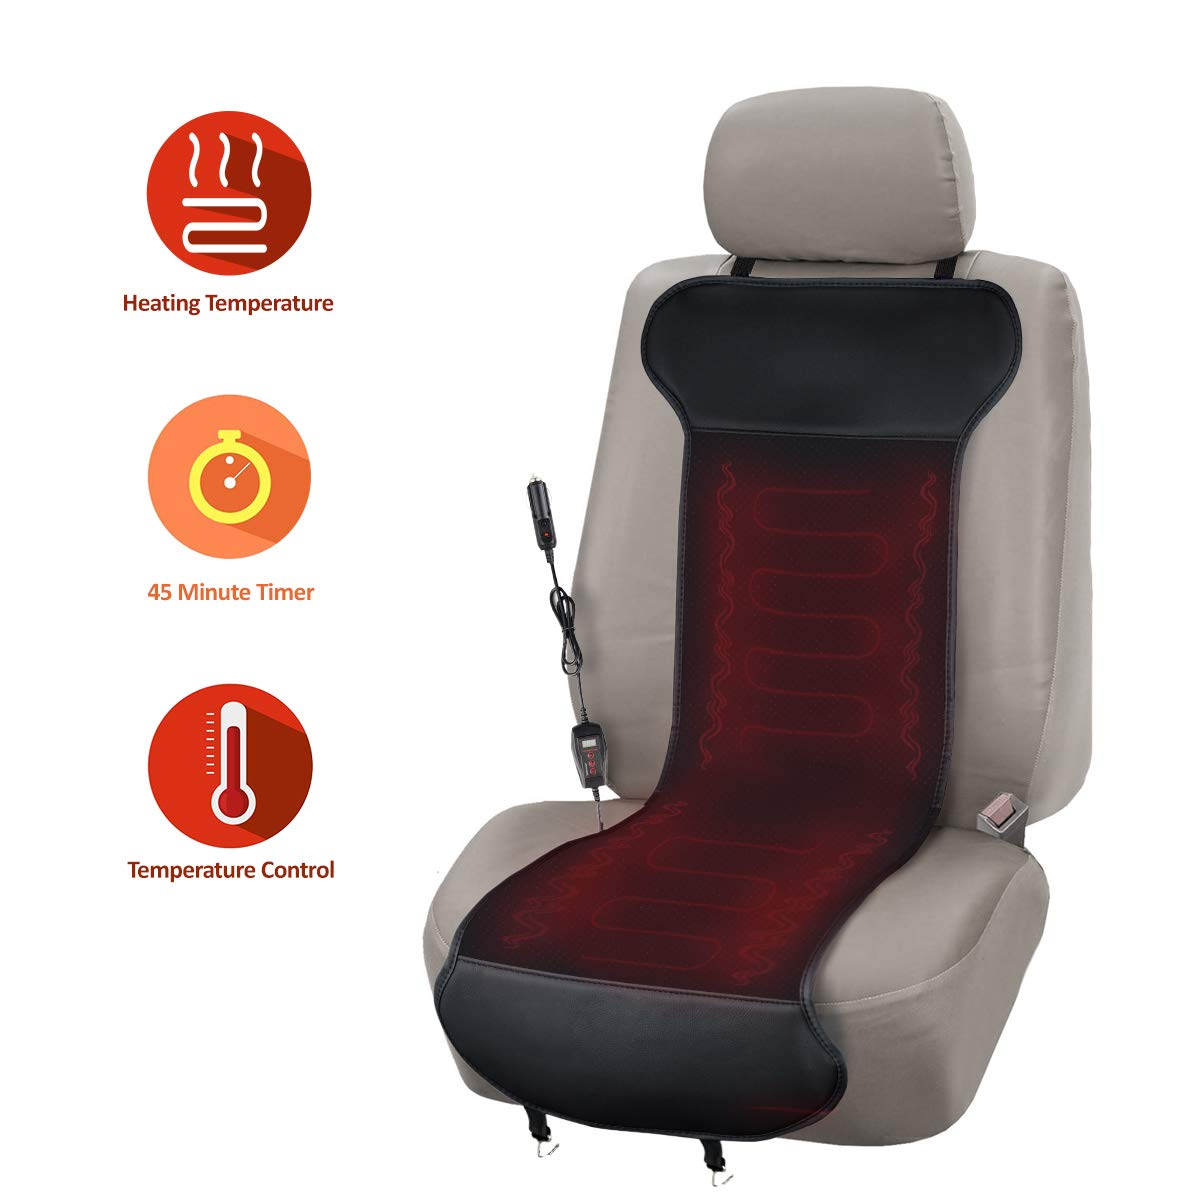 Zone Tech Car Heated Seat Cover Cushion with Temperature Control- Premium Quality Classic Black 12V Heated Comfortable Seat Cushion Perfect for Cold Weather and Winter Driving